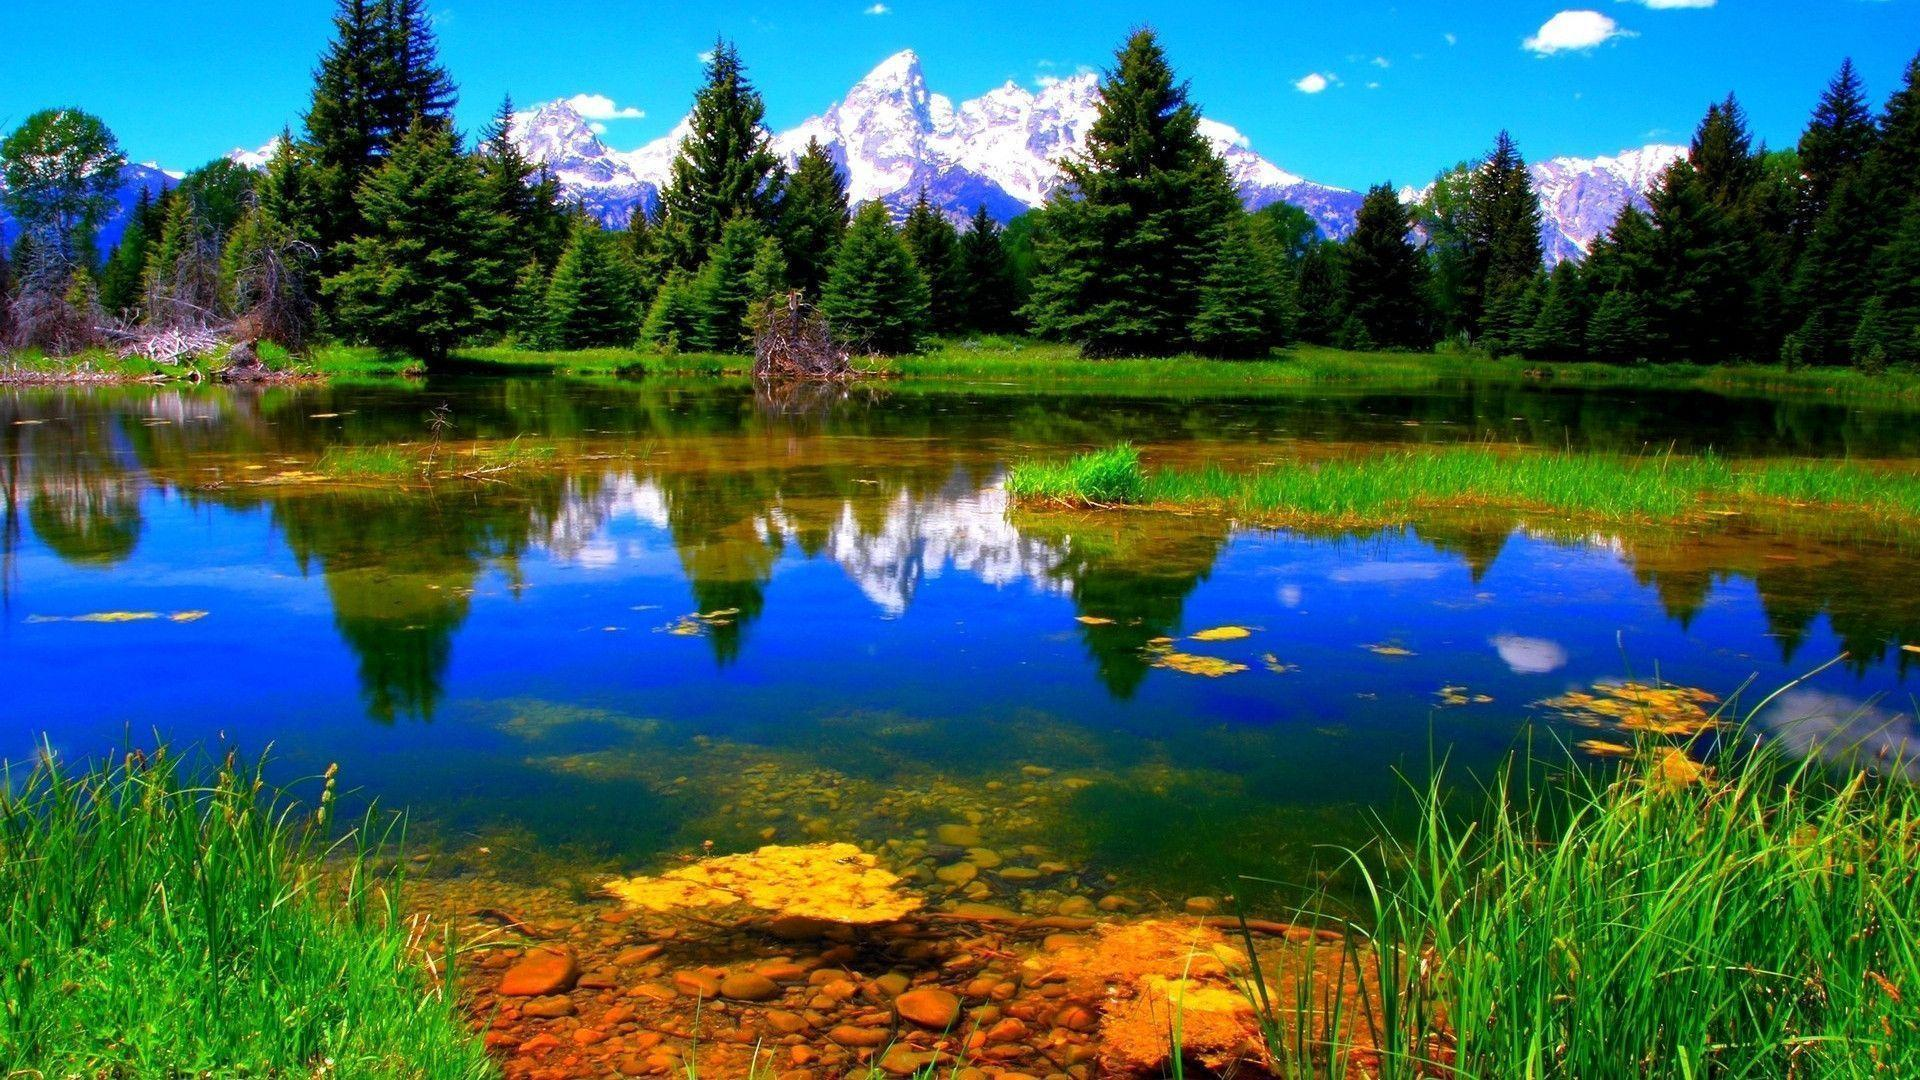 Full Hd Landscape Wallpapers Top Free Full Hd Landscape